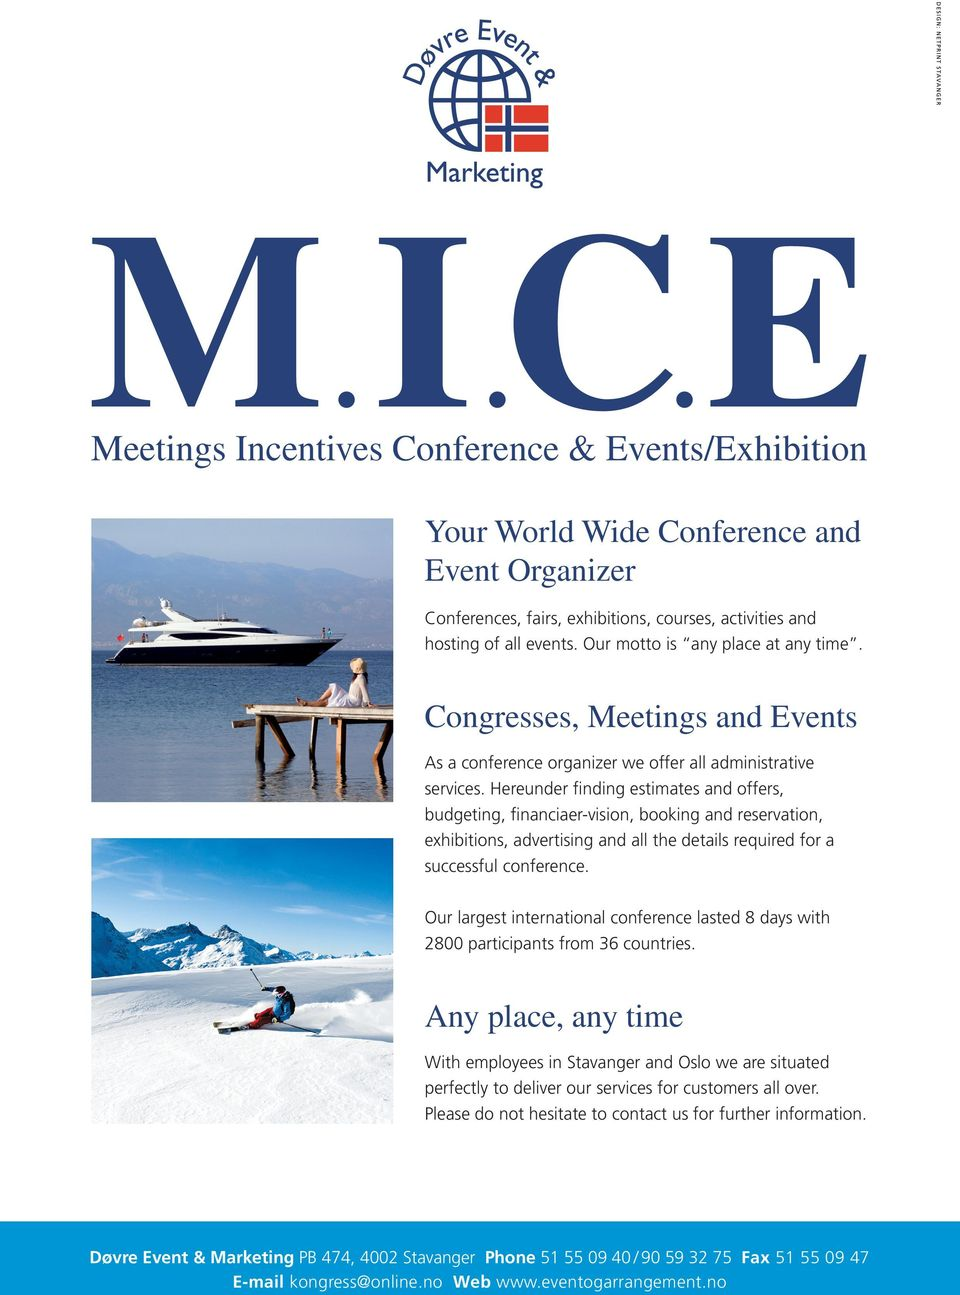 Hereunder finding estimates and offers, budgeting, financiaer-vision, booking and reservation, exhibitions, advertising and all the details required for a successful conference.